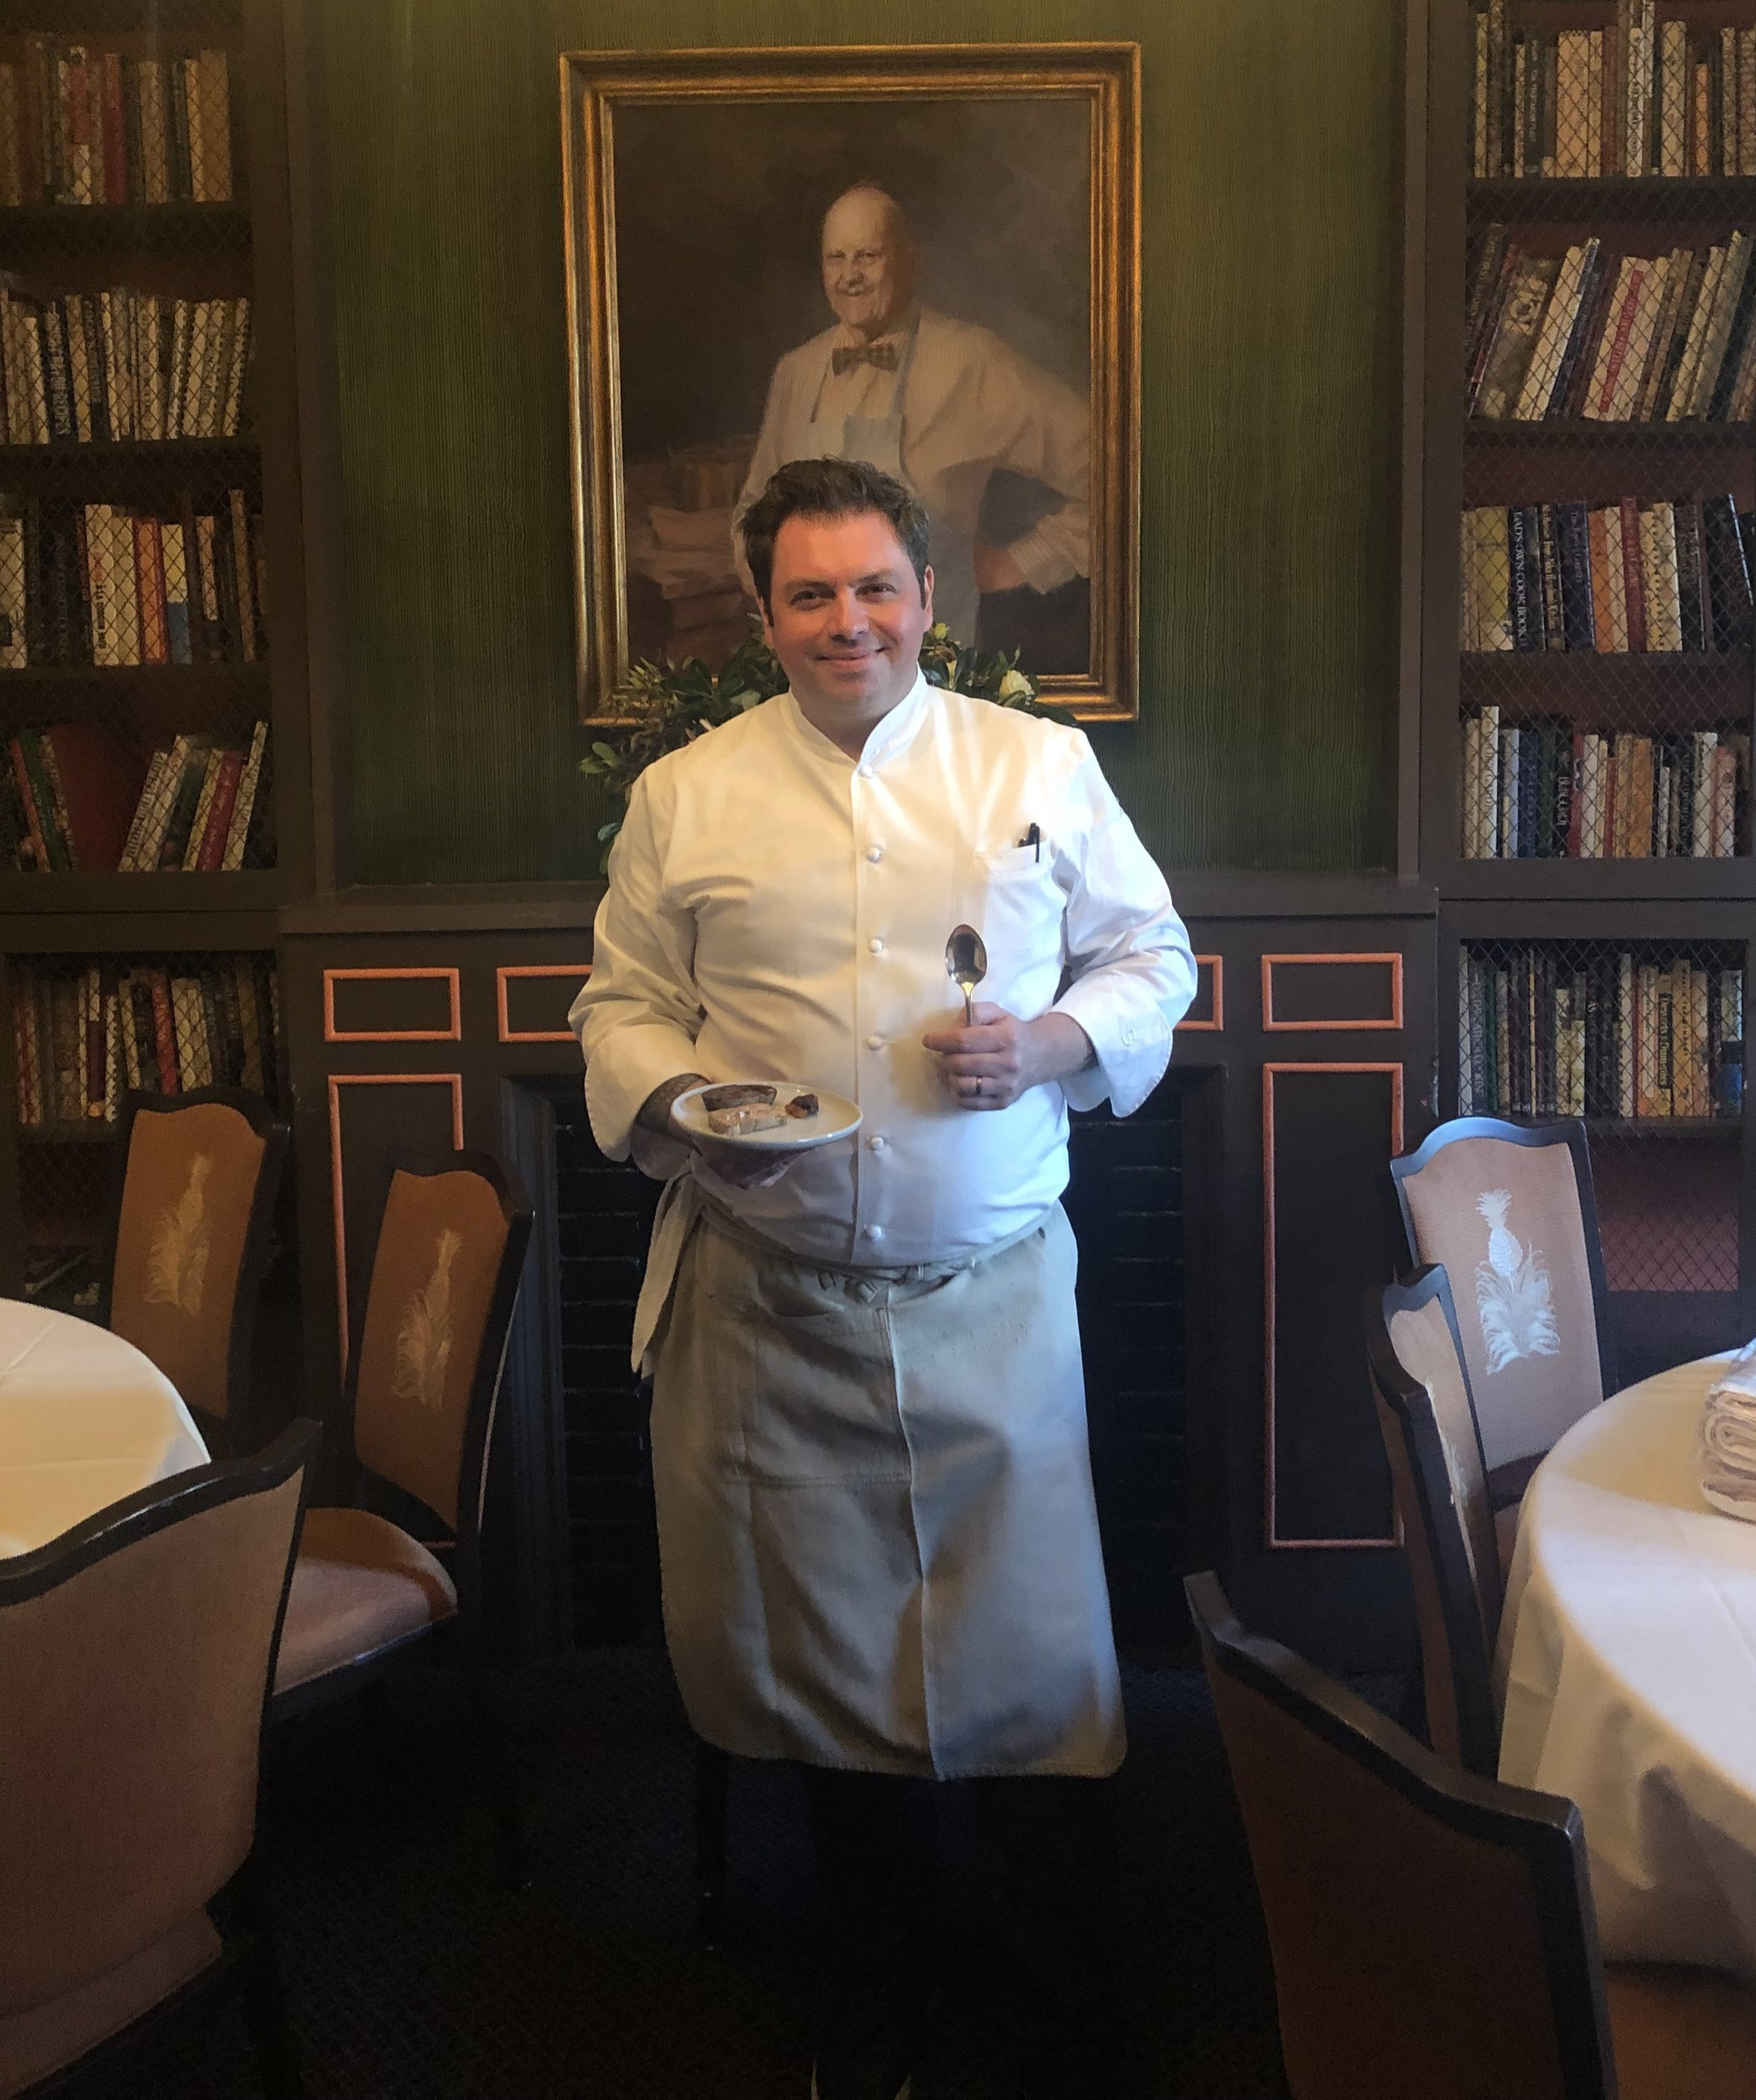 Chef Sebastien Rondier of Brabo stands in front of a portrait of James Beard at the James Beard House in NYC.